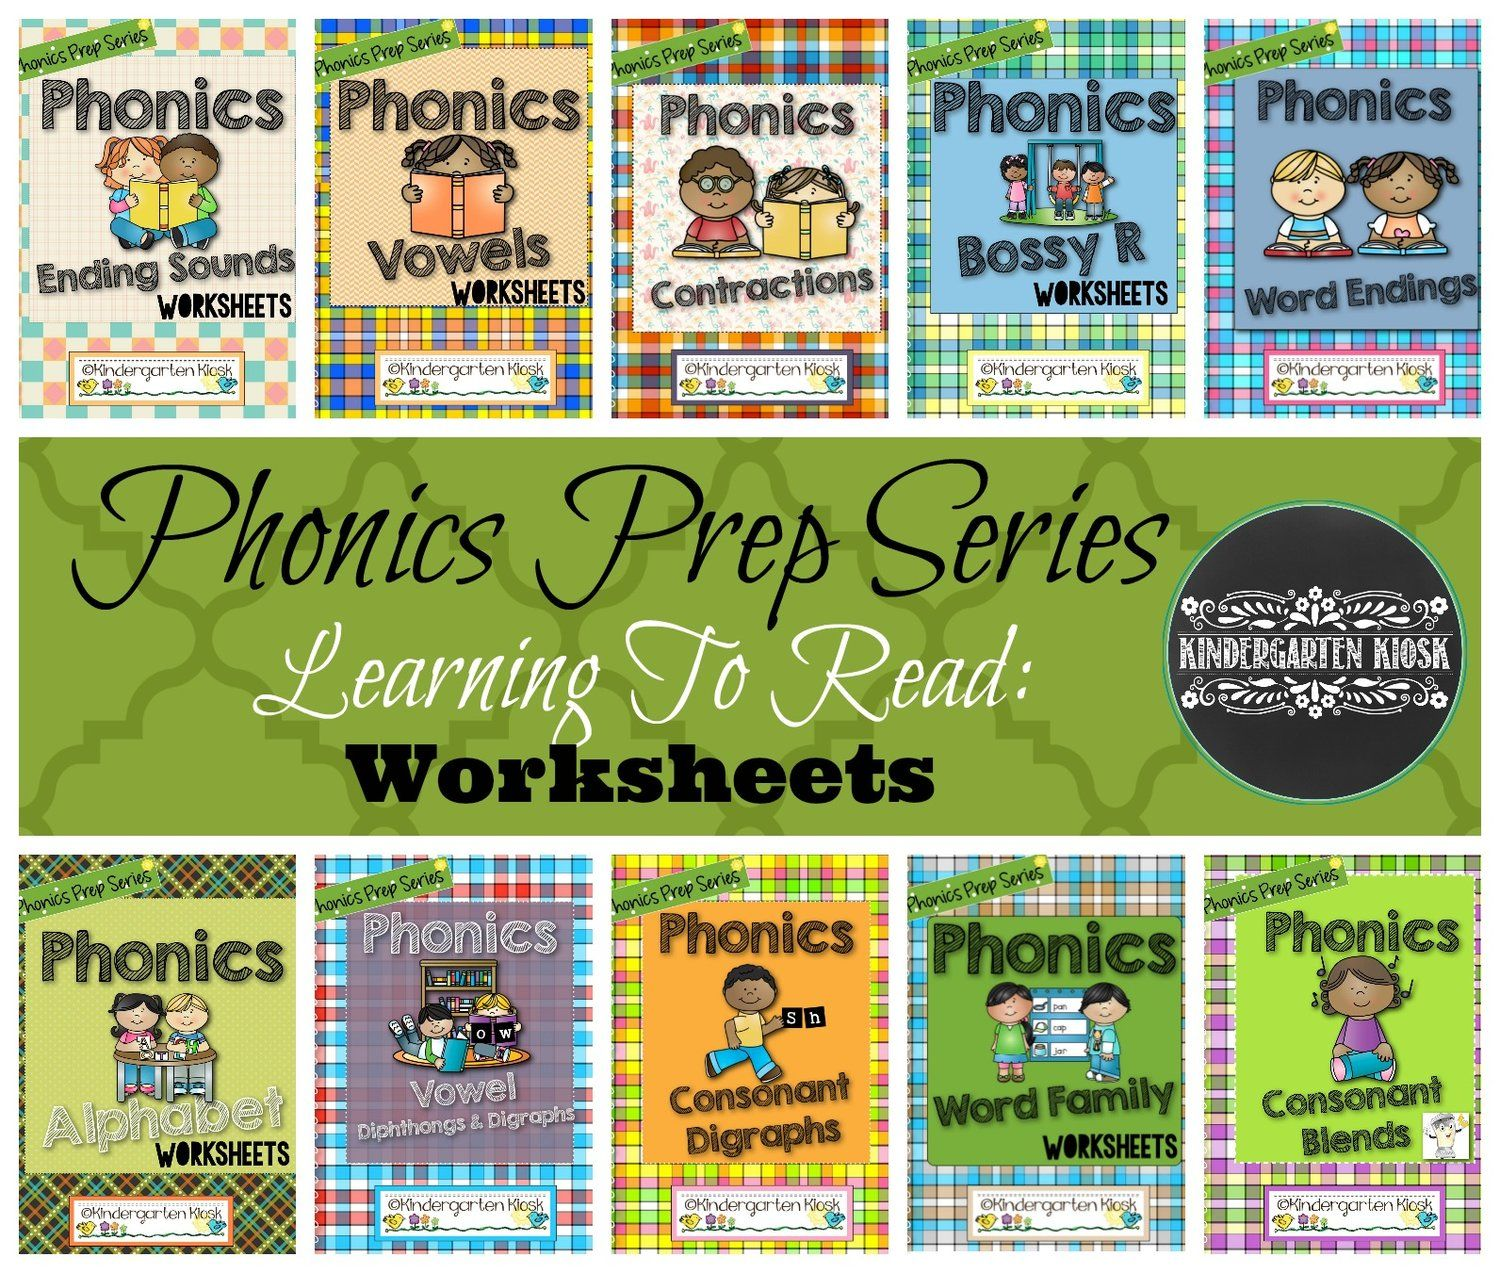 Phonics Easy Peasy Worksheets